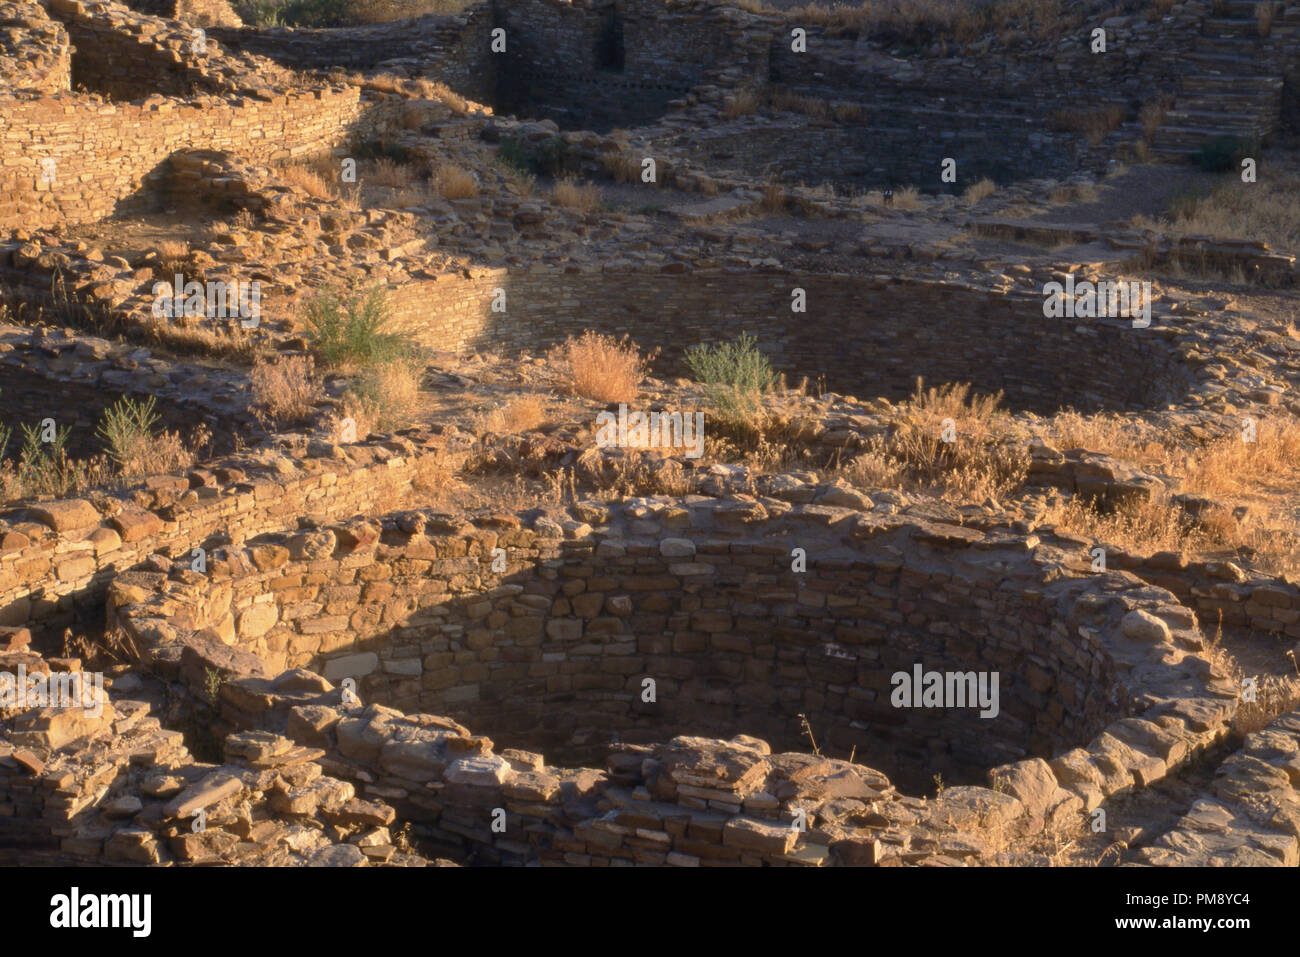 Anasazi kiva ruins of Pueblo del Arroyo, Chaco Canyon, New Mexico. Photograph Stock Photo